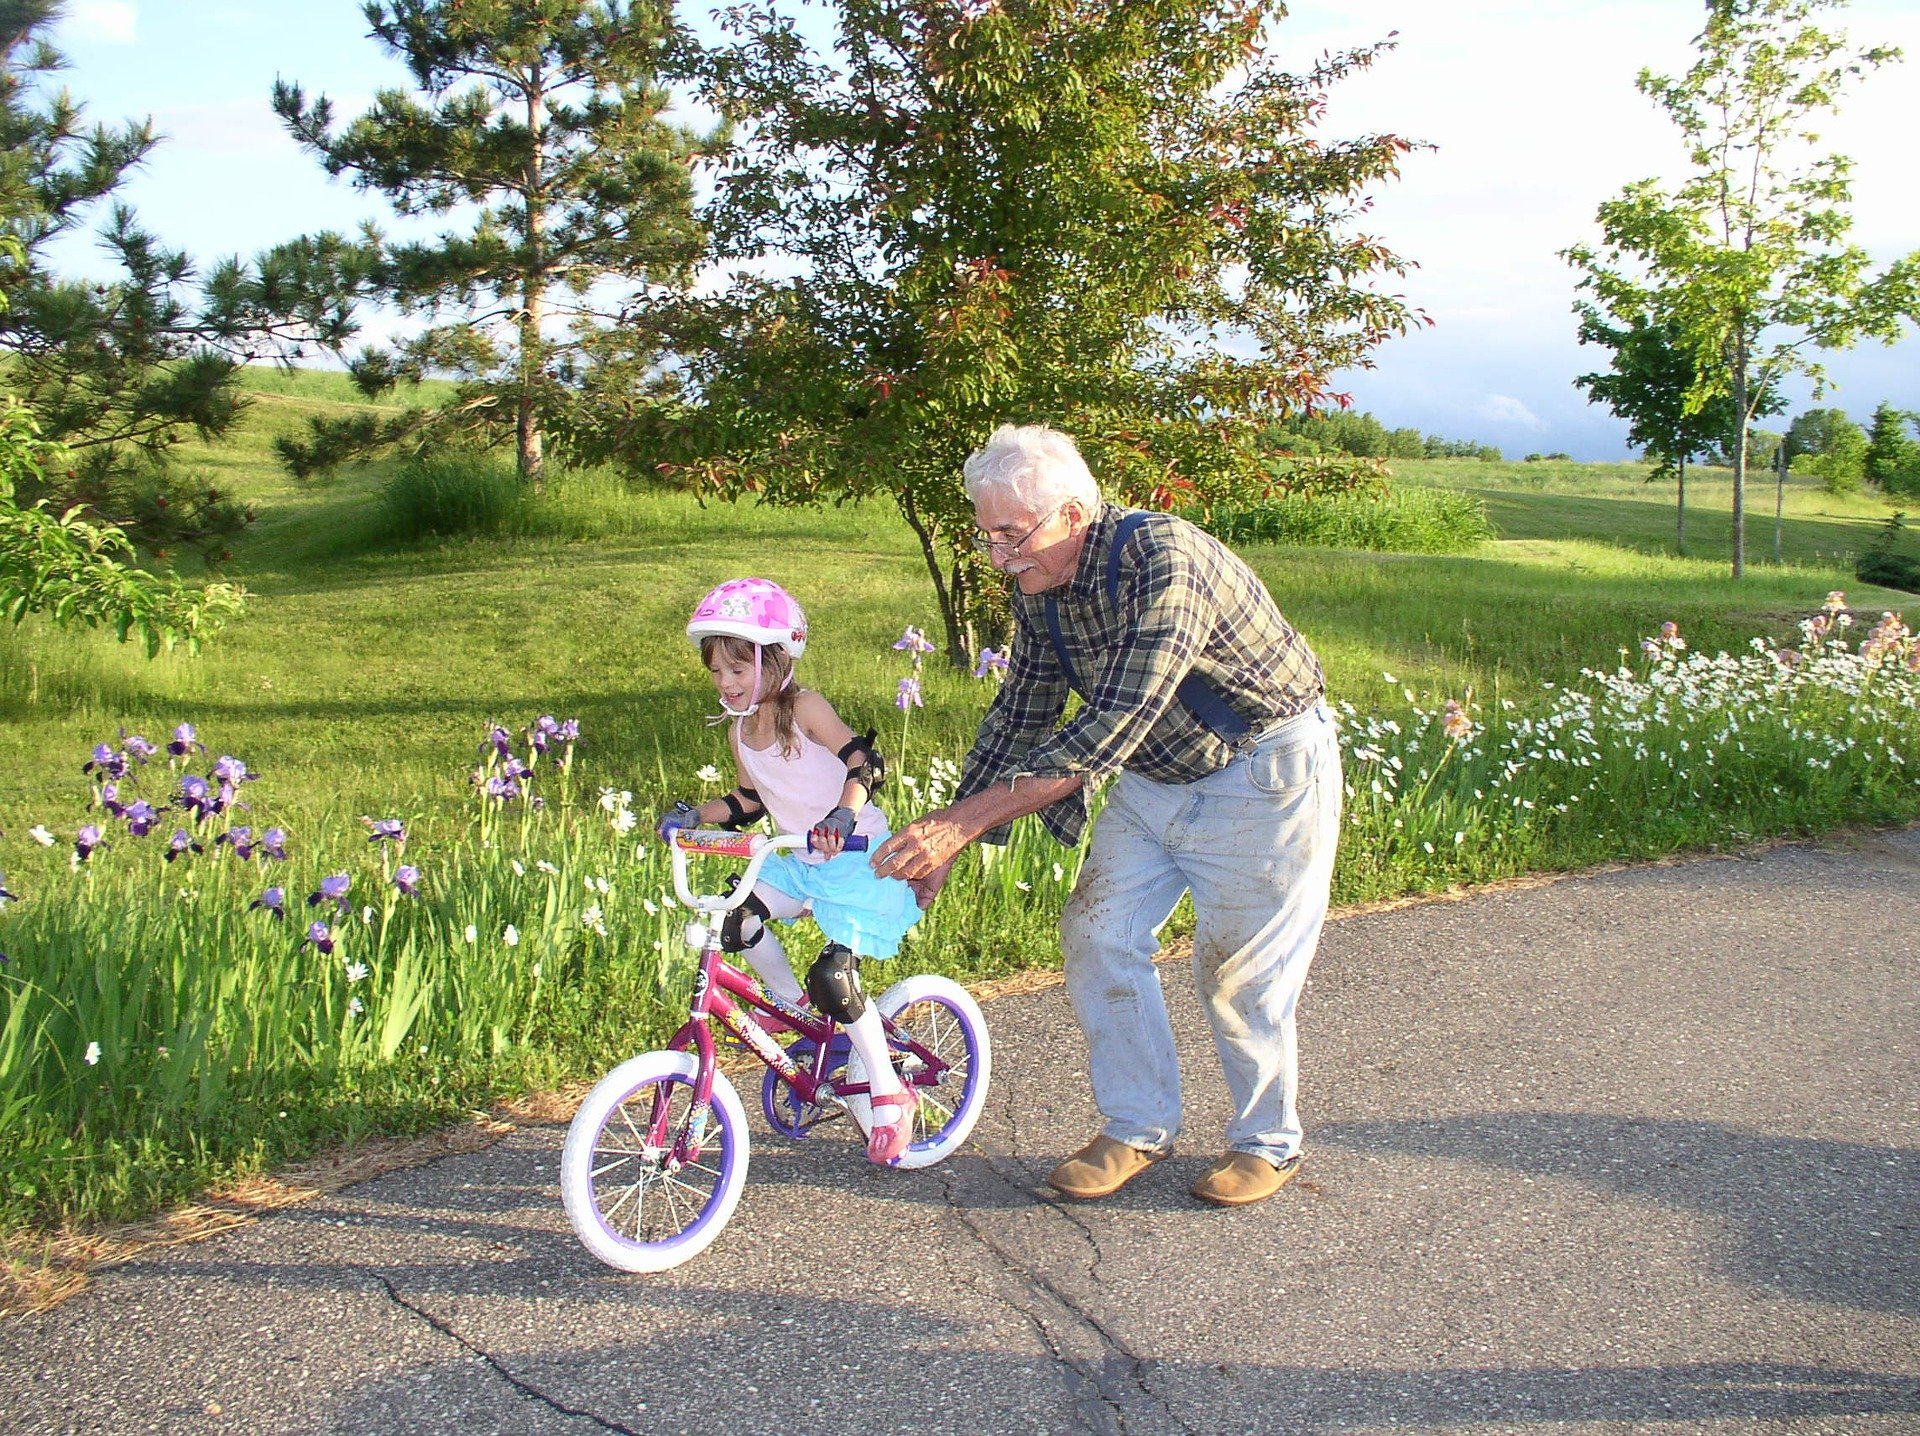 A granddaughter being pushed around on her bicycle. | Source: Pixabay.